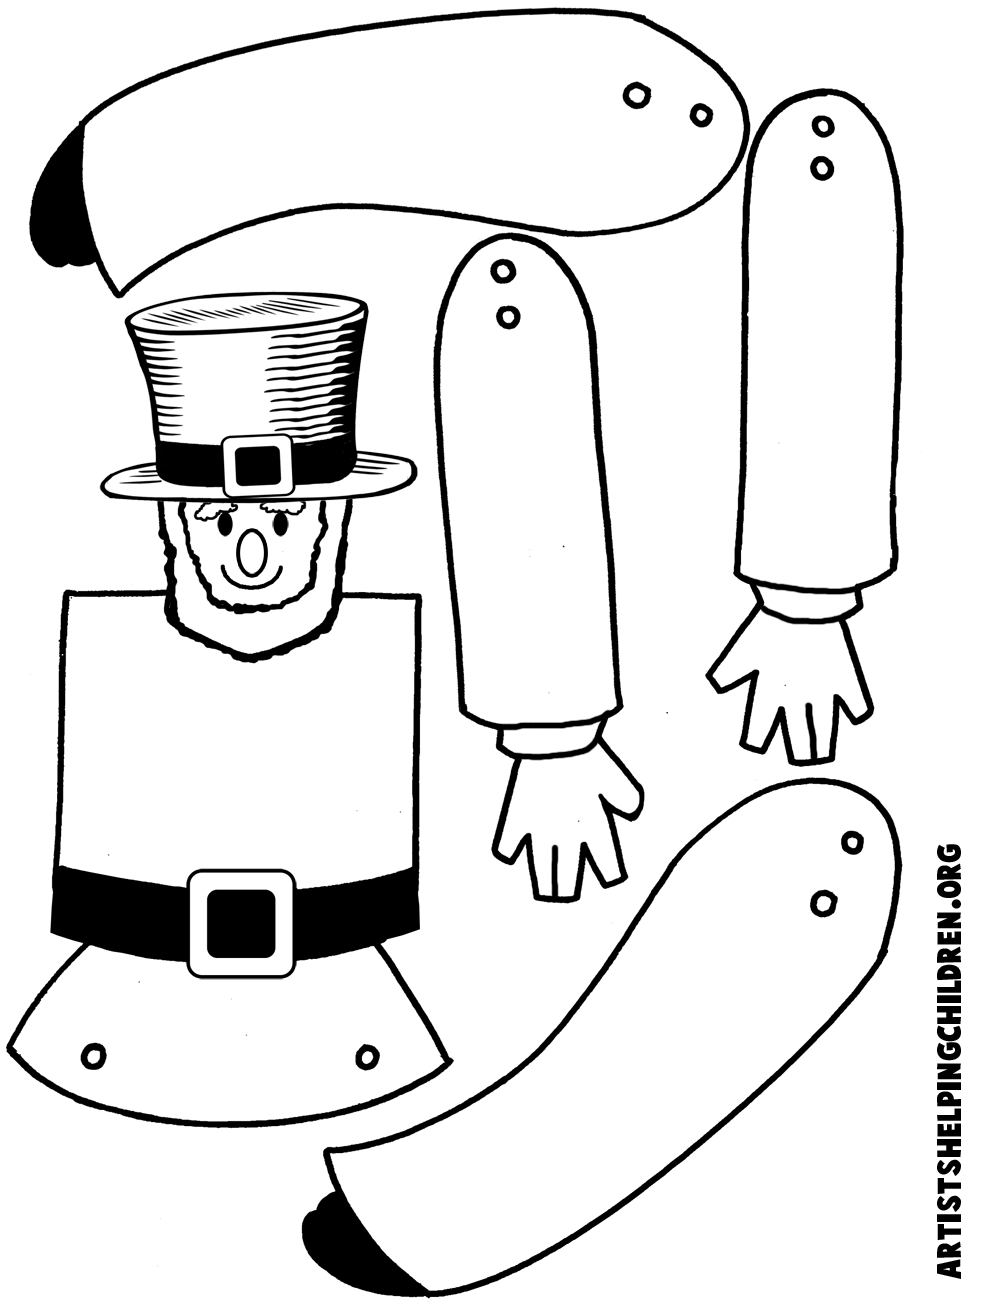 How to make jumping jack leprechauns for st patrick 39 s day for Leprechaun hat template printable